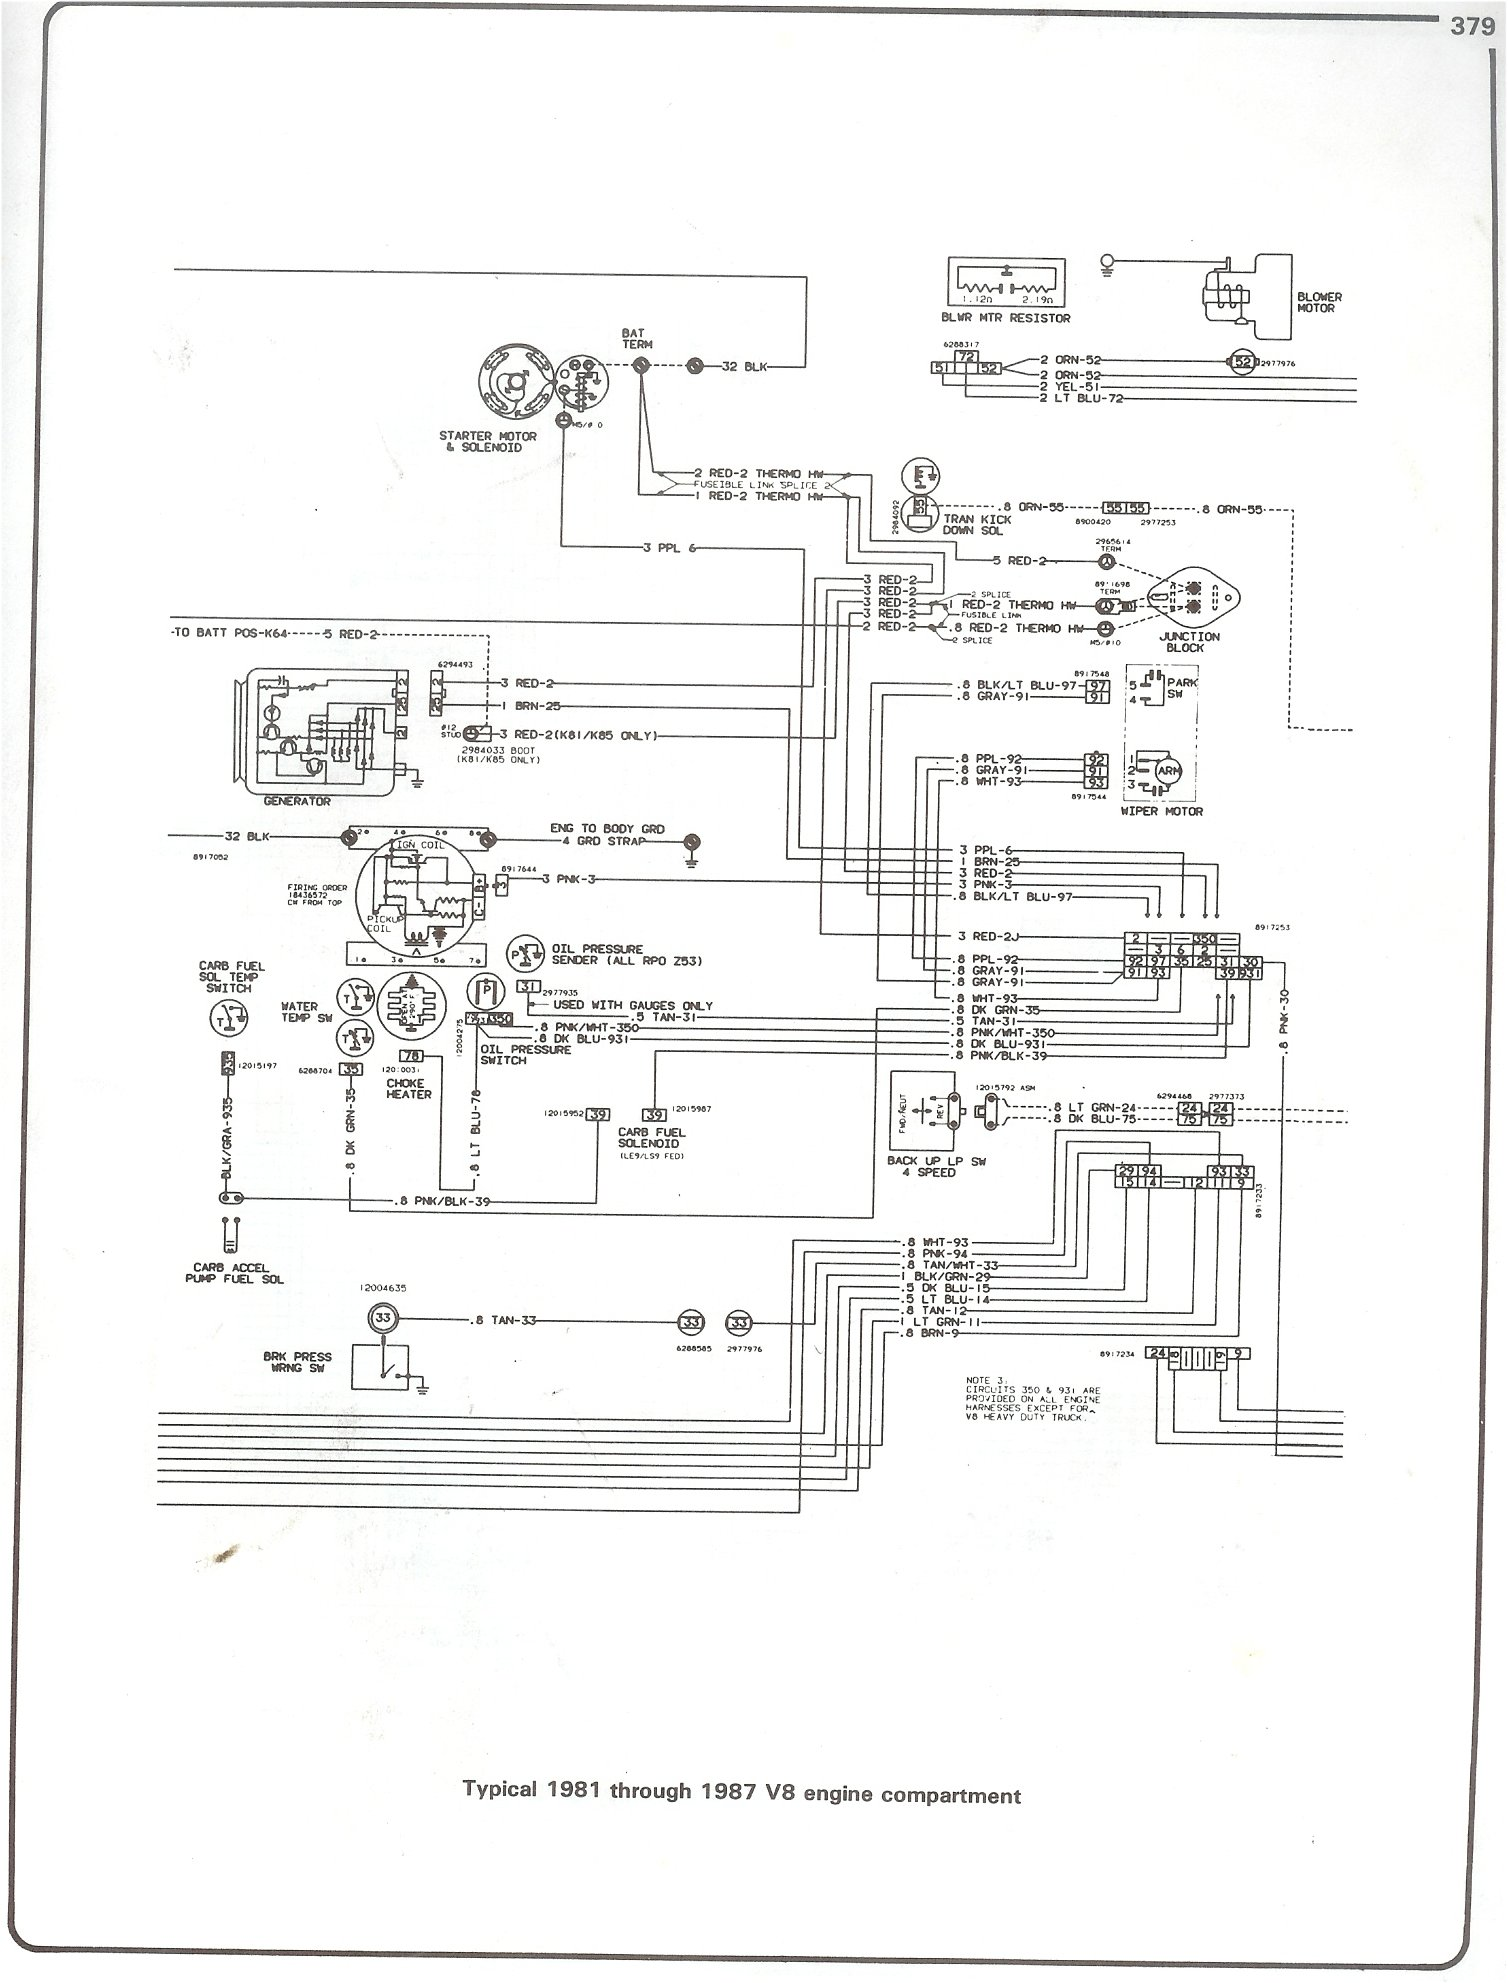 complete 73 87 wiring diagrams chevy truck wiring diagram 81 87 v8 engine  compartment